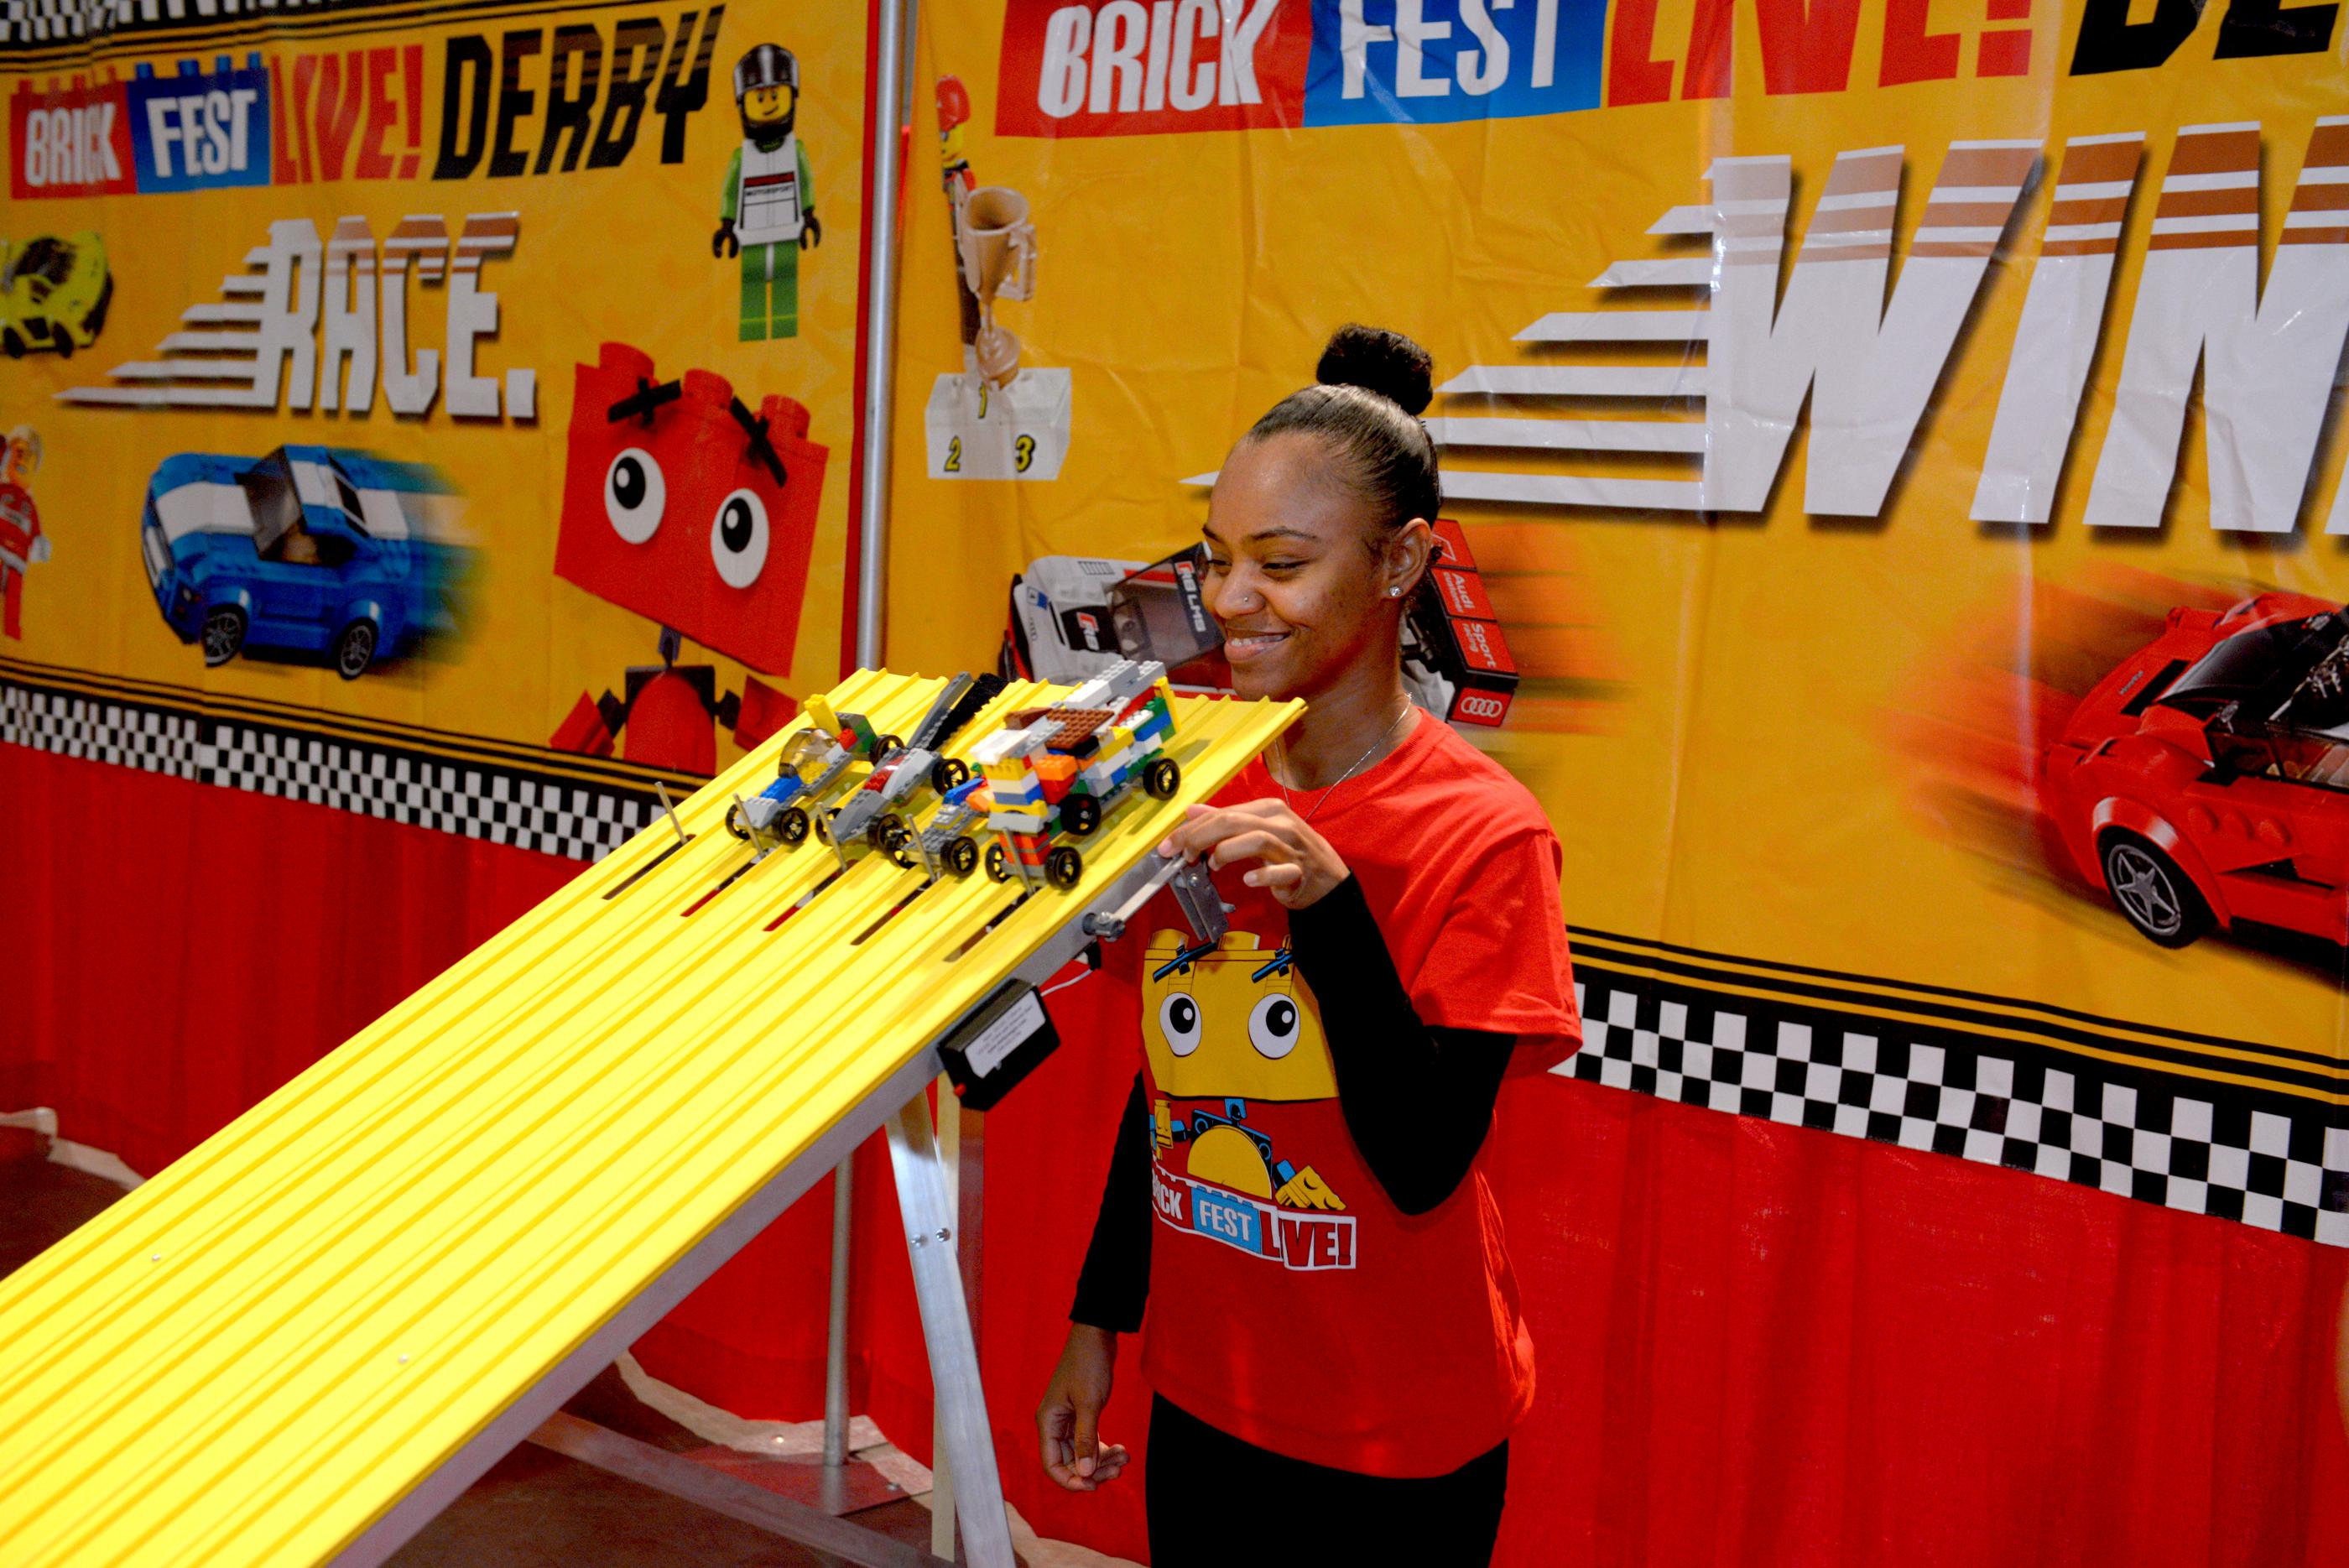 Lego cars customized by fans get ready to race at the Lego Speedway during the Brick Fest Live Lego Fan Experience at the Las Vegas Convention Center, September 9, 2017. [Glenn Pinkerton/Las Vegas News Bureau]